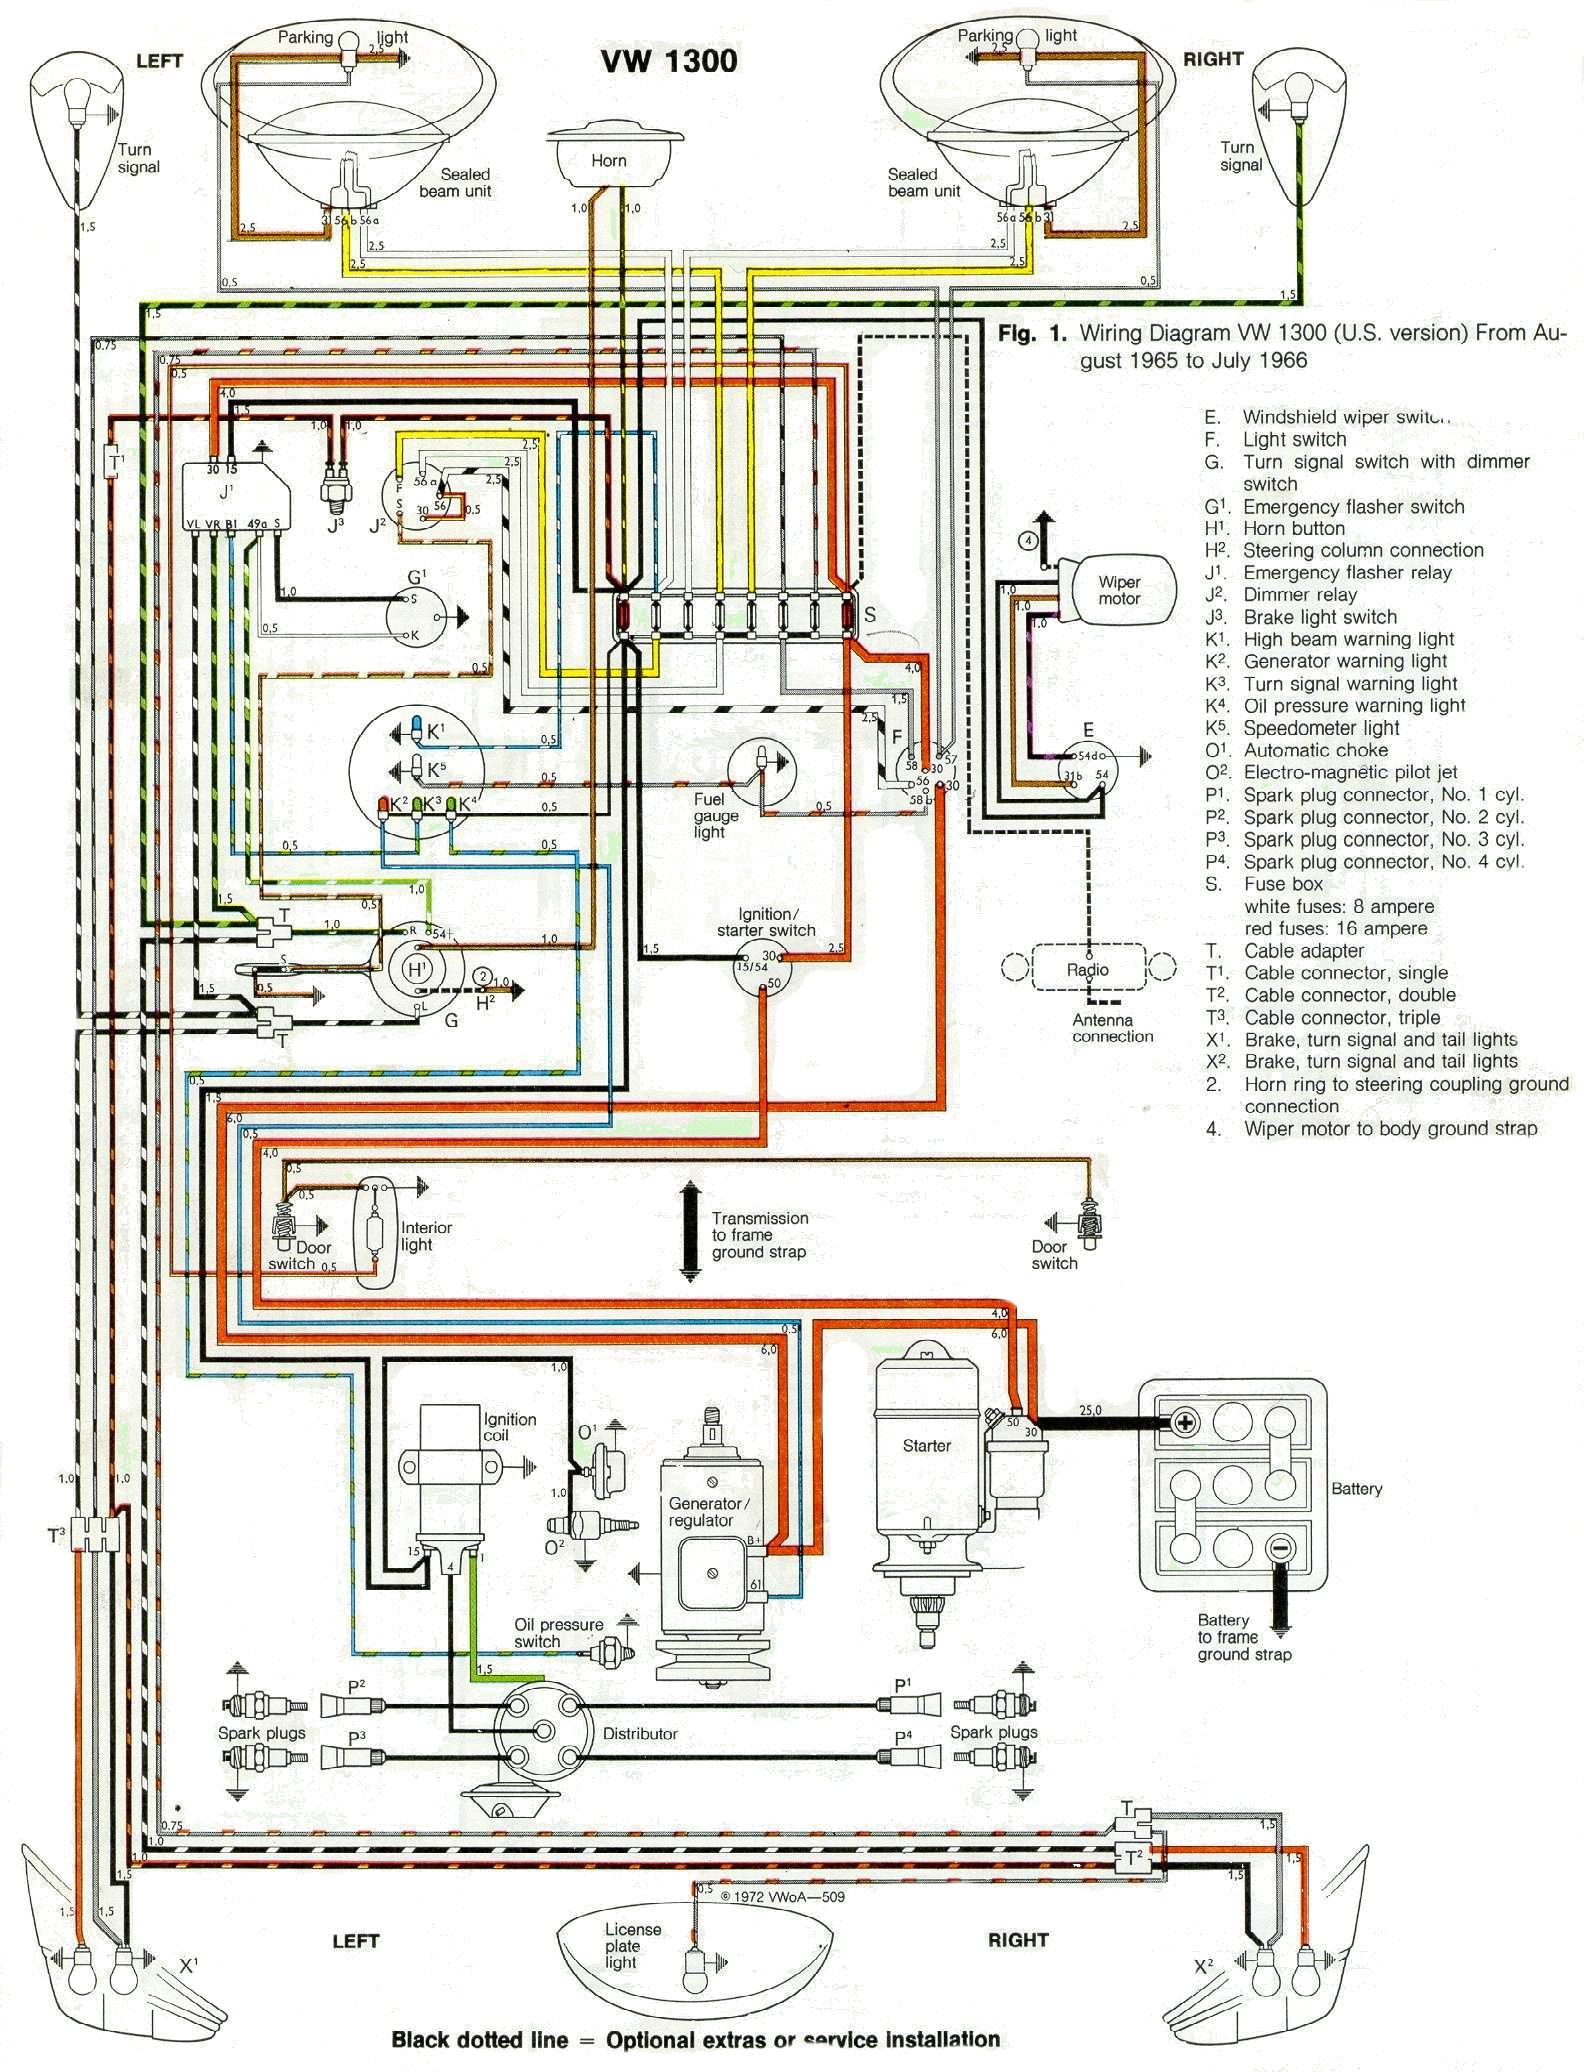 air cooled vw wiring diagram horn air cooled vw wiring diagram horn air cooled vw wiring diagram